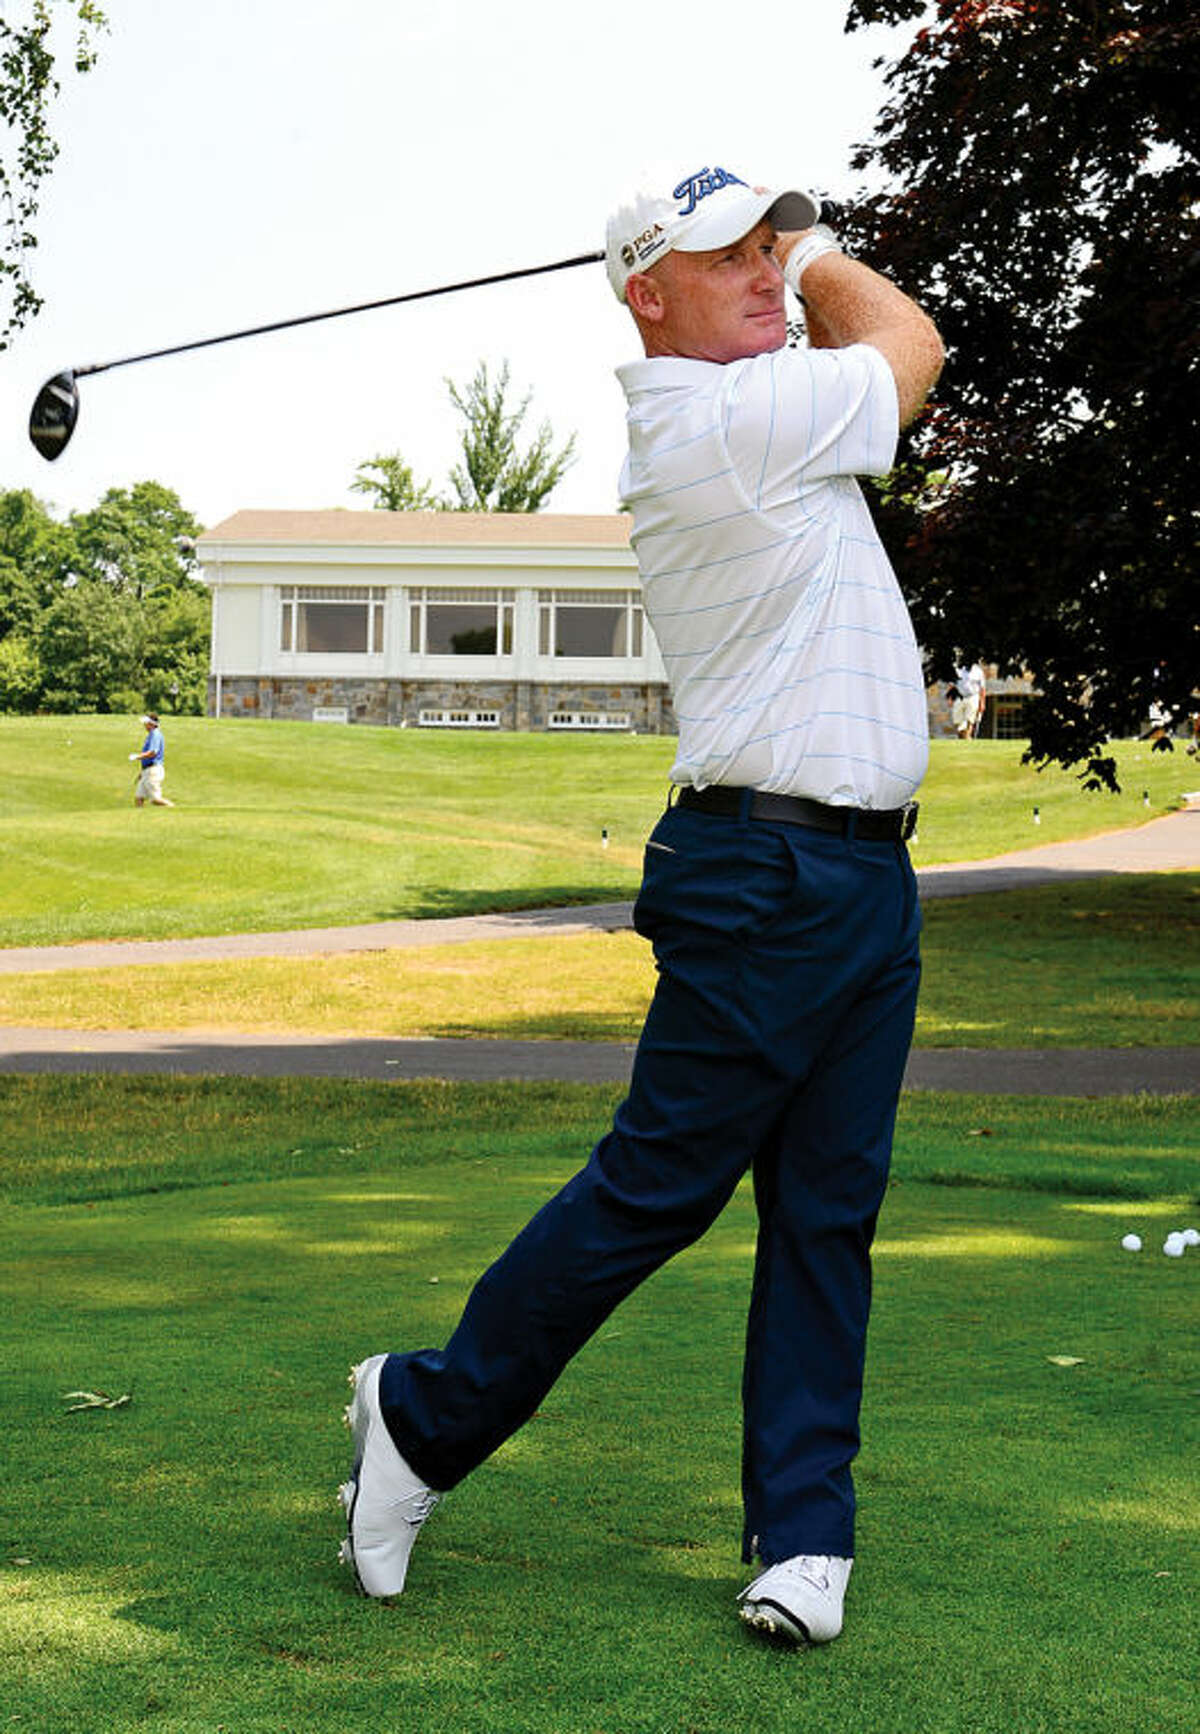 Hour photo / Erik Trautmann Former Norwalk resident and golf pro Frank Bensel tees off at Rolling Hills Country Club following a press conference/media day announcing the upcoming Connecticut Open Golf Championship at the club Wednesday.